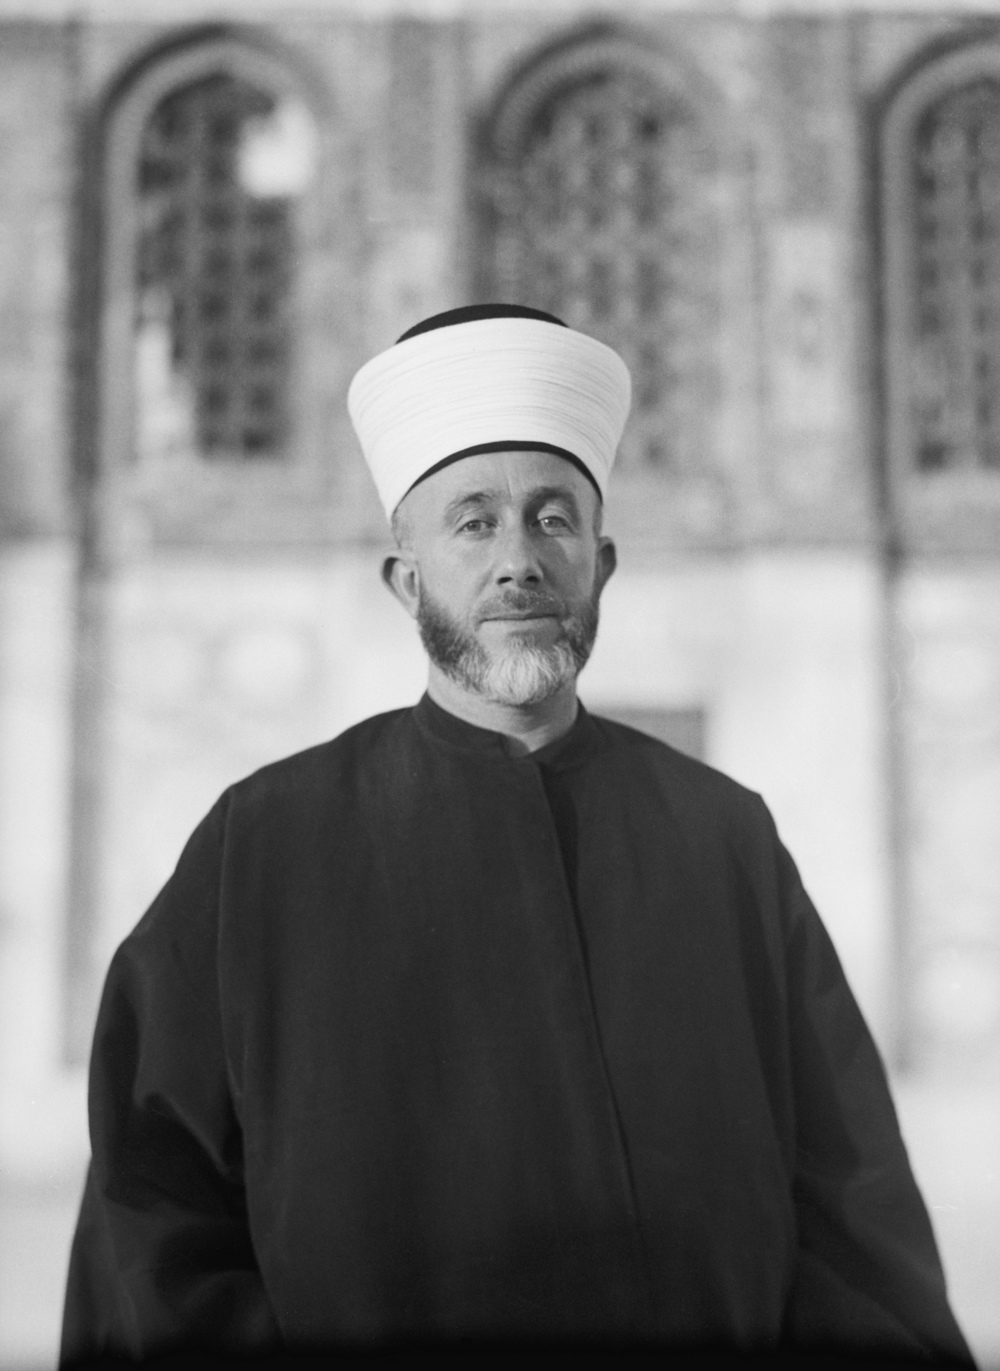 "Click photo to download. Caption: Haj Amin el-Husseini, better known as the Grand Mufti of Jerusalem. Credit: American Colony (Jerusalem), Photo Dept., photographer.                 0     0     1     11     59     JNS     1     1     69     14.0                            Normal     0                     false     false     false         EN-US     JA     X-NONE                                                                                                                                                                                                                                                                                                                                                                                                                                                                                                                                                                                                                                                                                                                    /* Style Definitions */ table.MsoNormalTable 	{mso-style-name:""Table Normal""; 	mso-tstyle-rowband-size:0; 	mso-tstyle-colband-size:0; 	mso-style-noshow:yes; 	mso-style-priority:99; 	mso-style-parent:""""; 	mso-padding-alt:0in 5.4pt 0in 5.4pt; 	mso-para-margin:0in; 	mso-para-margin-bottom:.0001pt; 	mso-pagination:widow-orphan; 	font-size:12.0pt; 	font-family:Cambria; 	mso-ascii-font-family:Cambria; 	mso-ascii-theme-font:minor-latin; 	mso-hansi-font-family:Cambria; 	mso-hansi-theme-font:minor-latin;}"